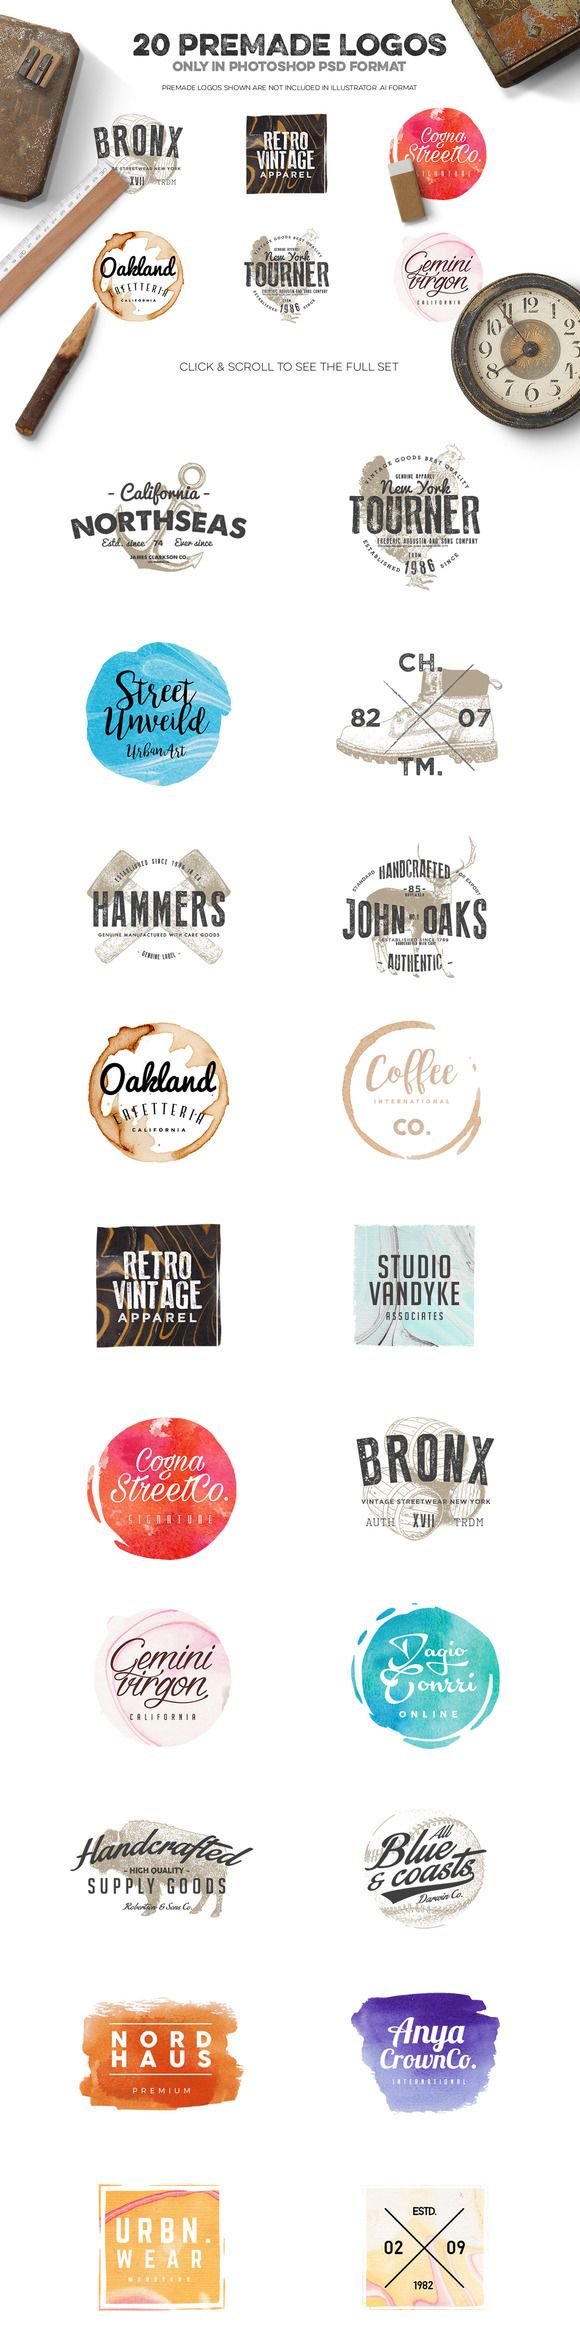 Logo Creation Kit Bundle Edition by Zeppelin Graphics on Behance